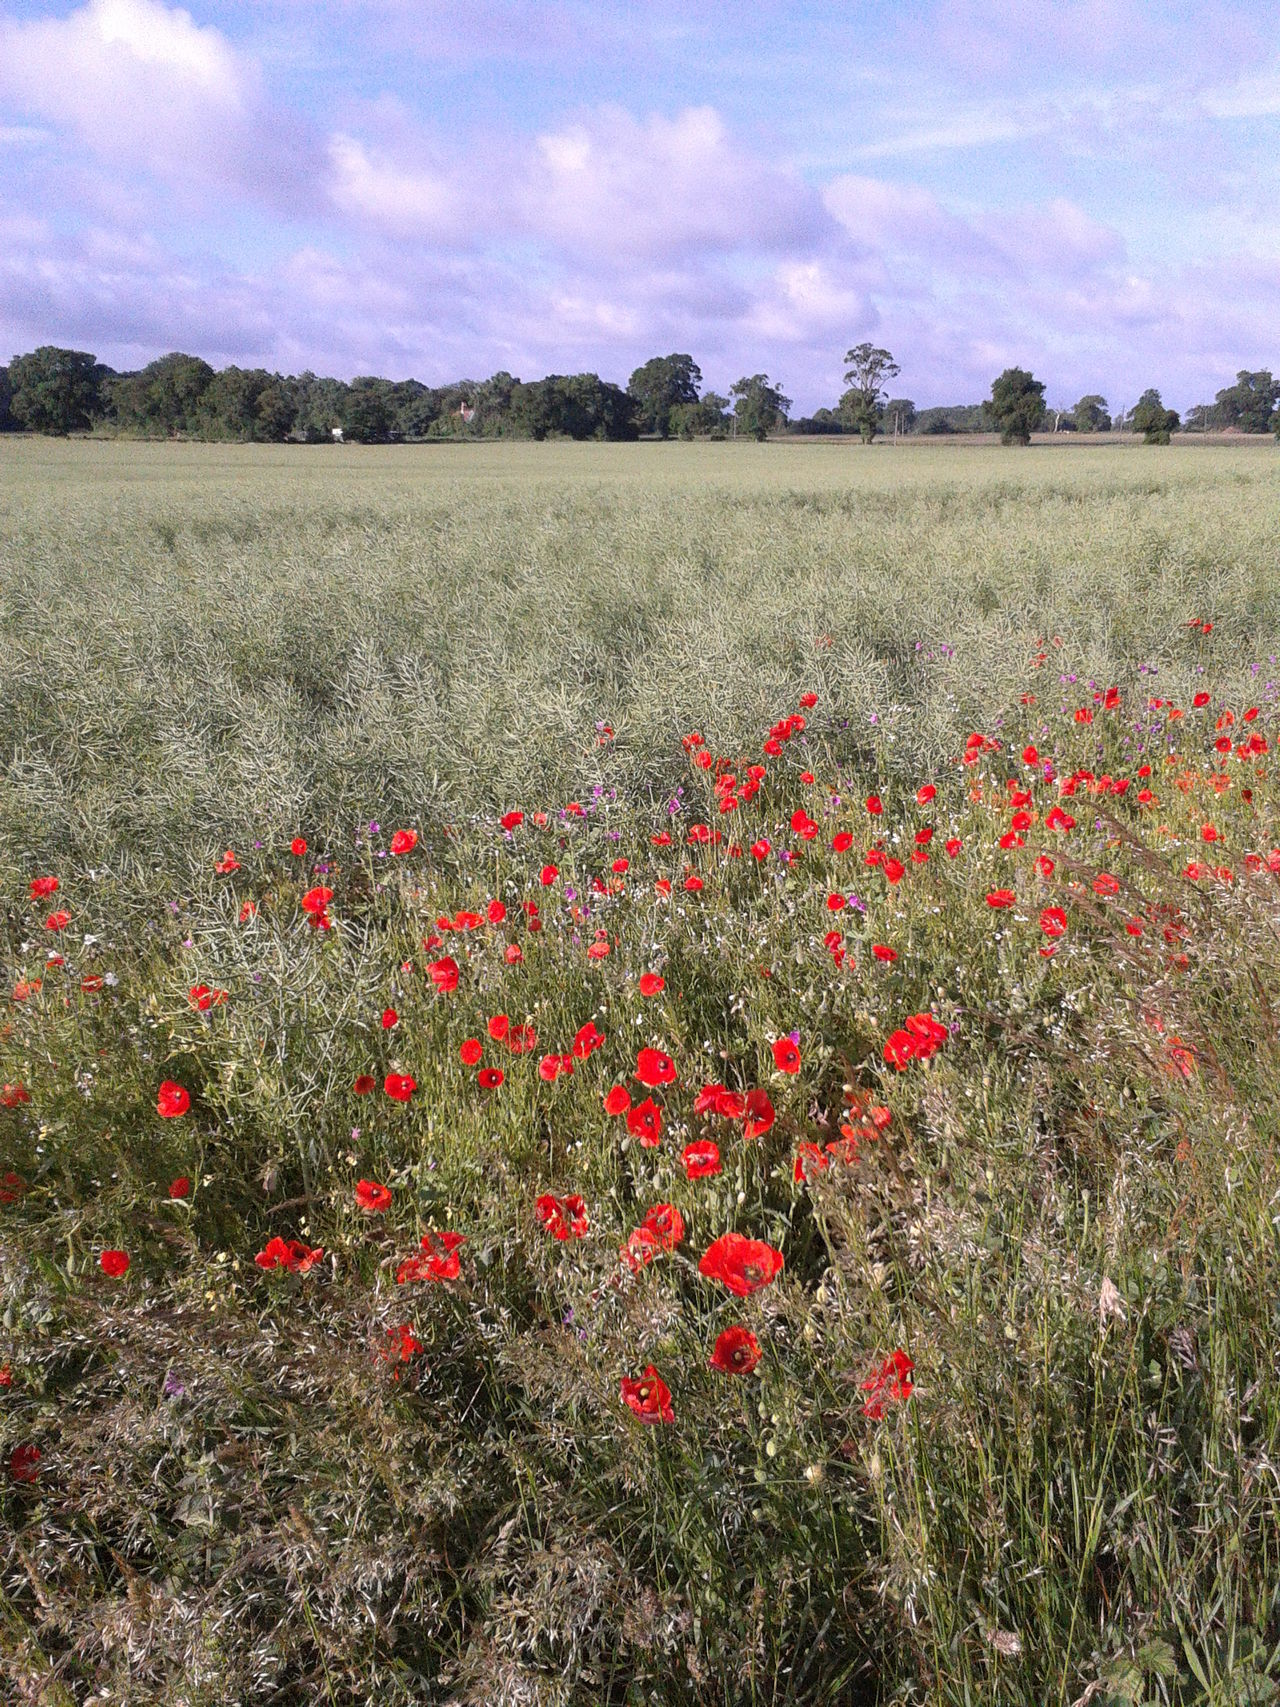 Suffolk, United Kingdom Agriculture Growth No People Nature Plant Outdoors OilSeedRape Poppy Flowers Poppies  Poppies In Bloom